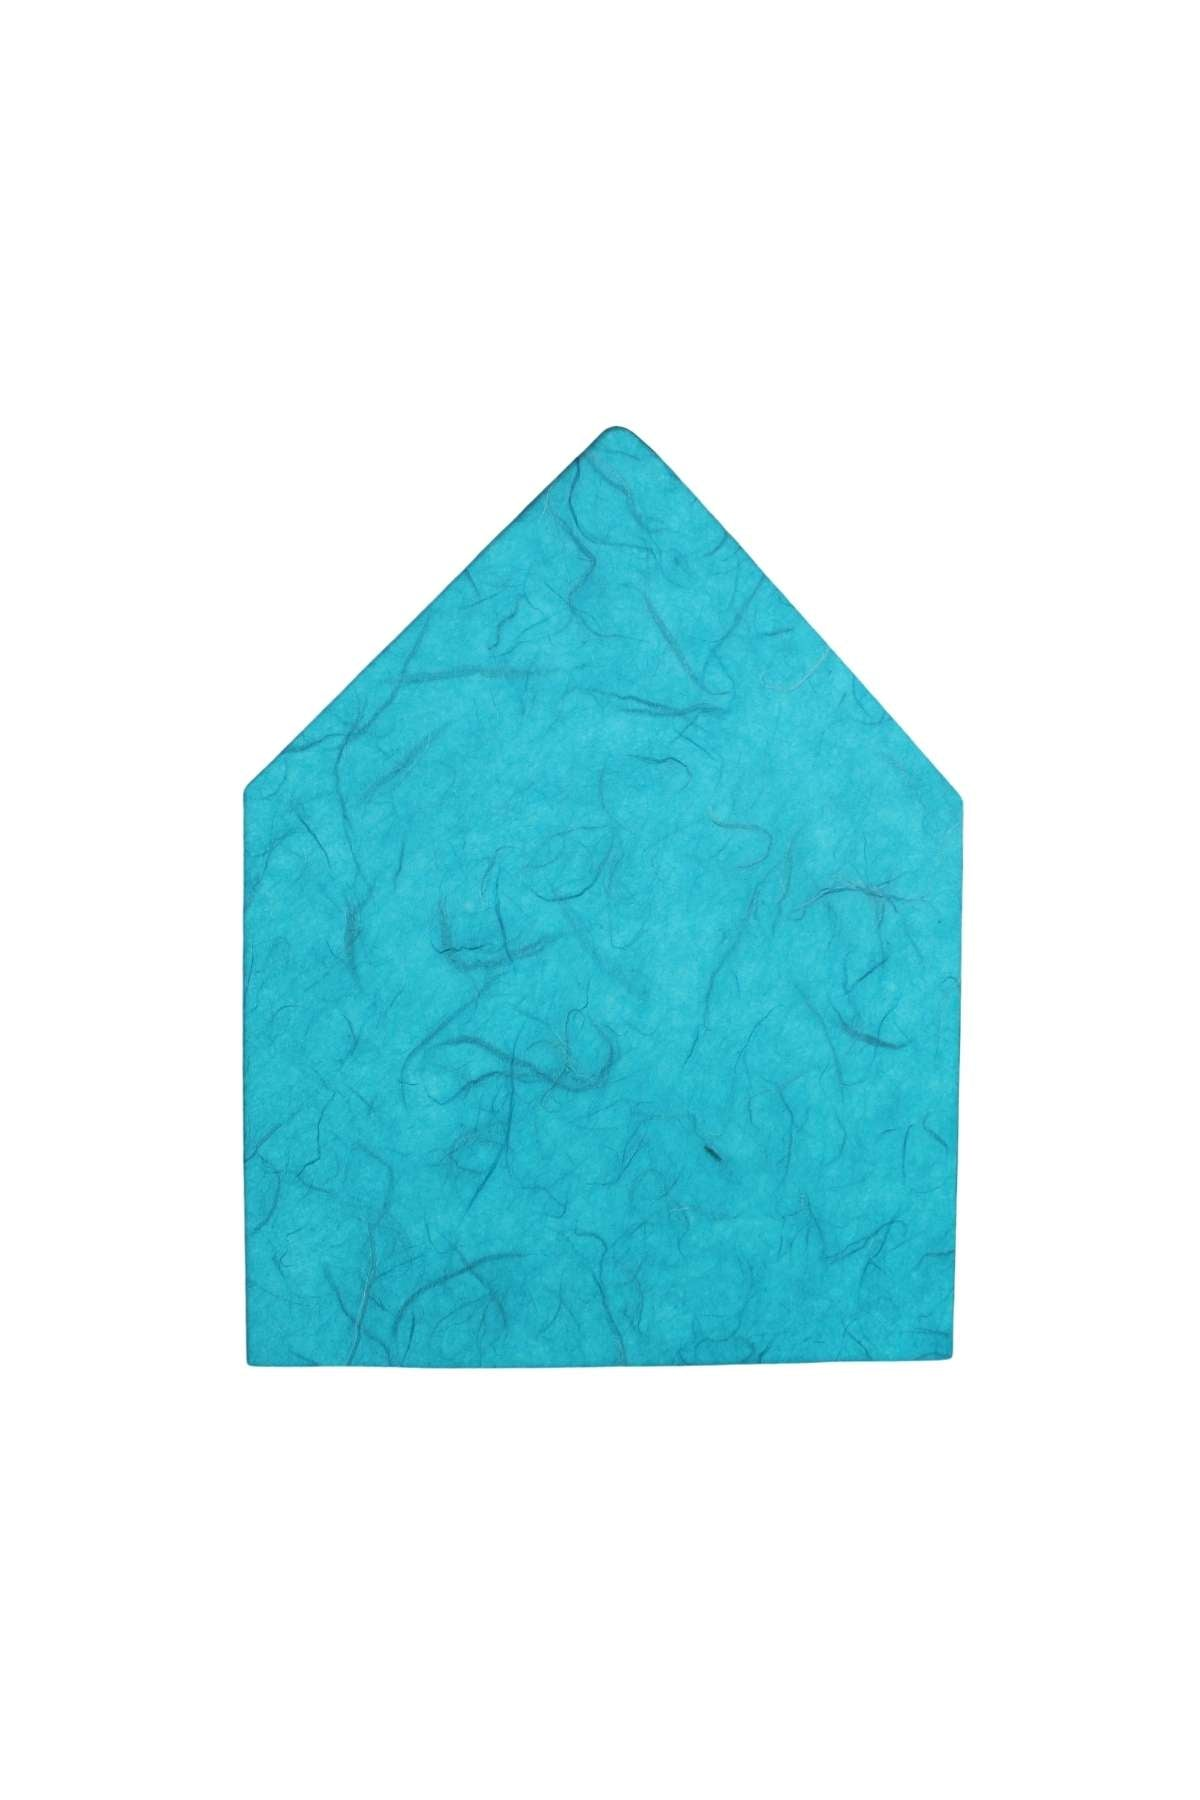 Envelope Liner Turquoise - Liberties Papers